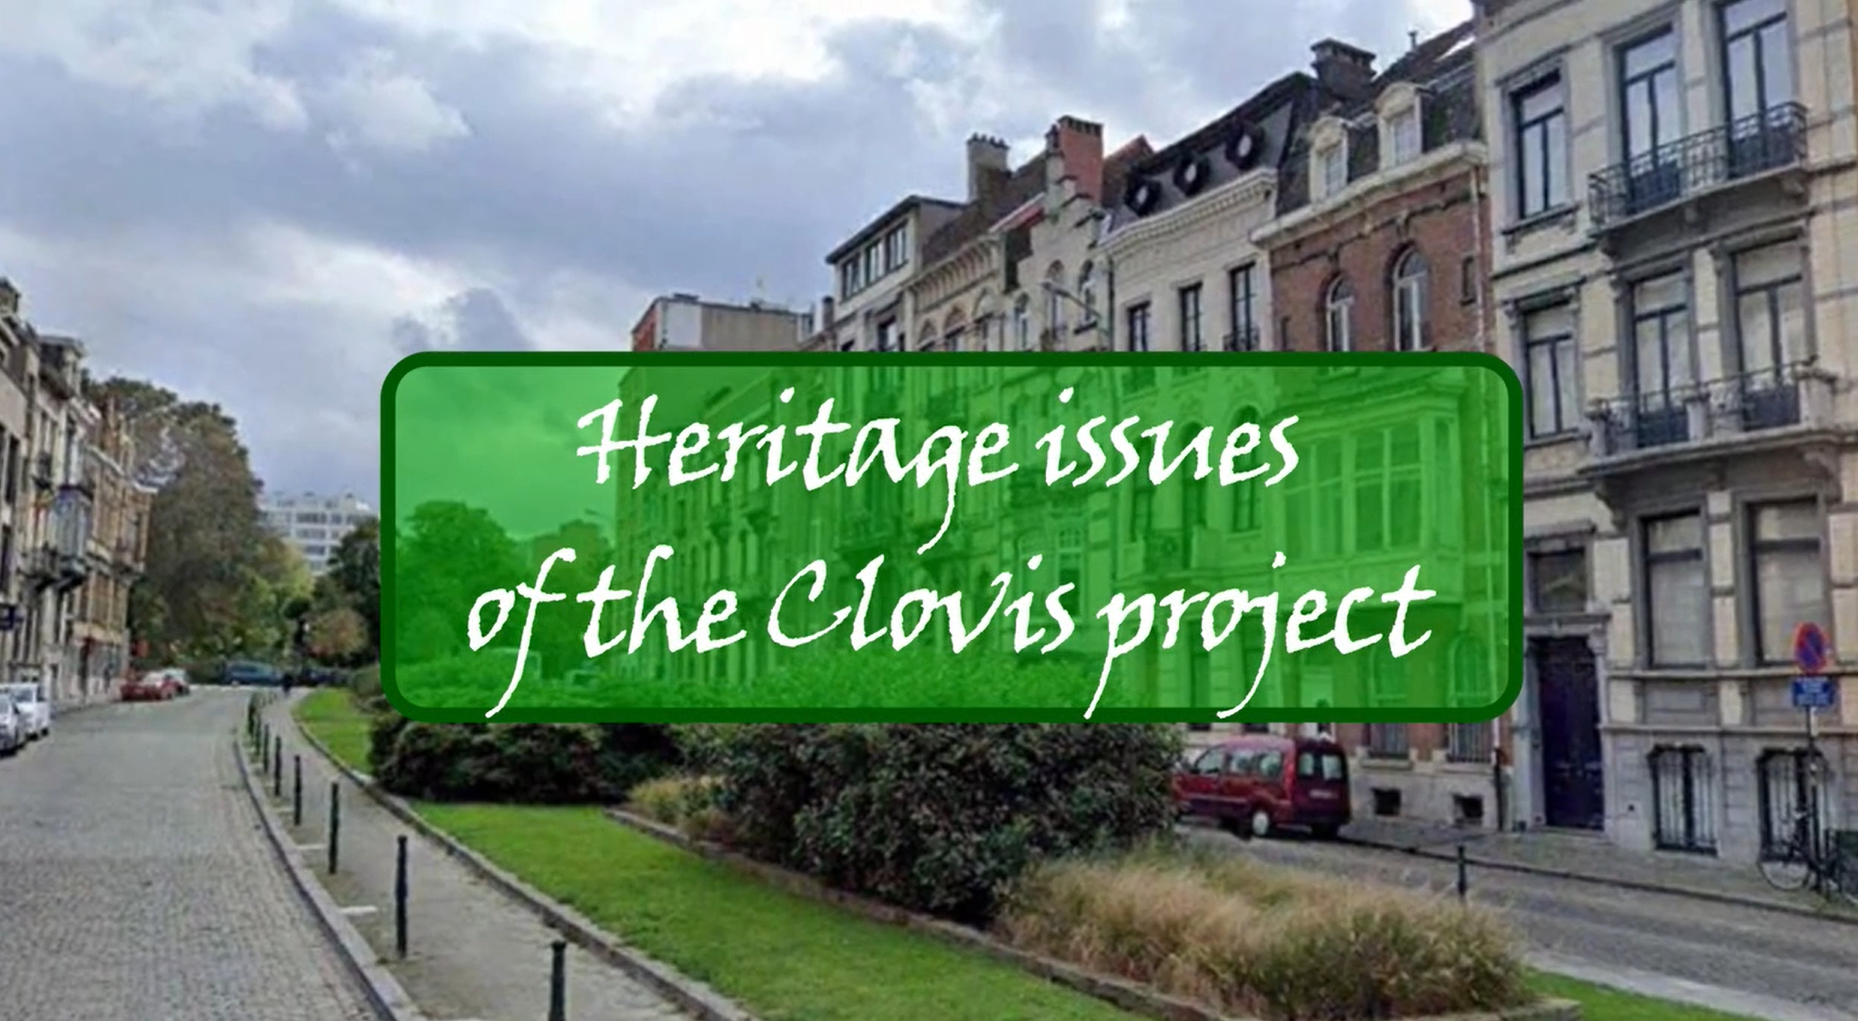 Heritage issues